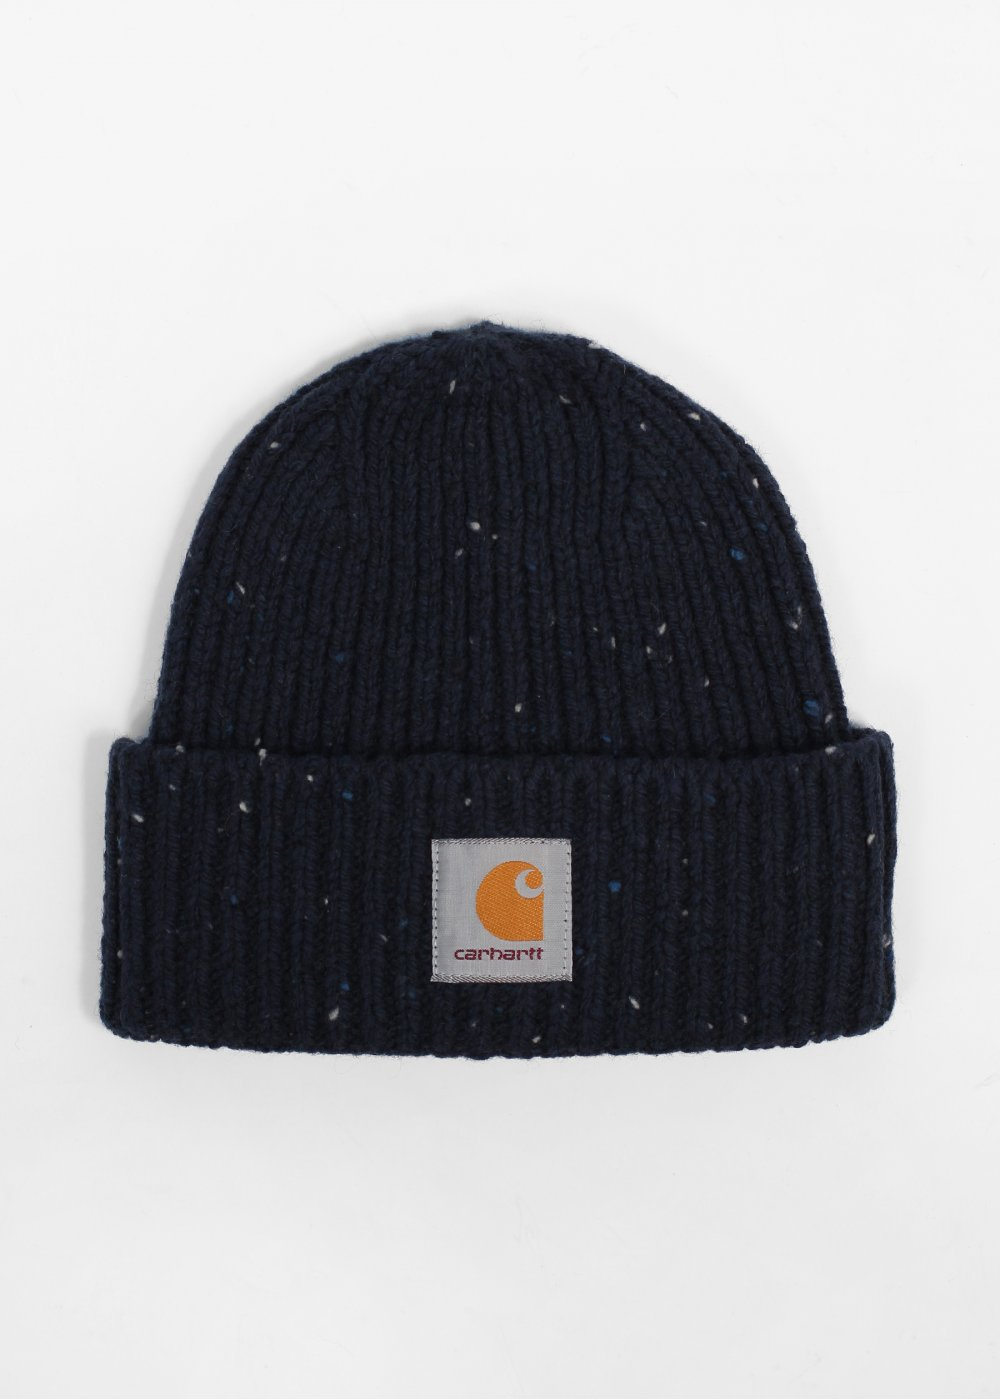 Carhartt Anglistic Knit Beanie Hat - Navy Blue  ea682385433